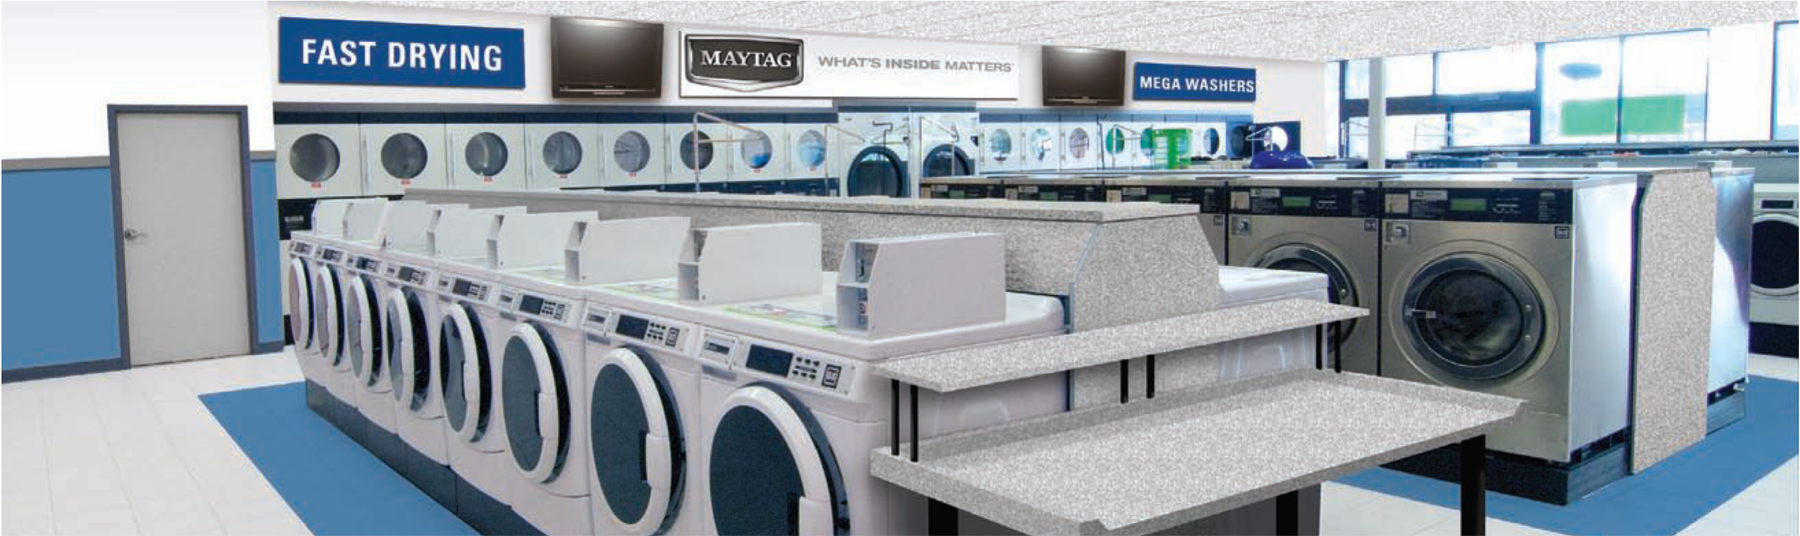 Why equipment marketers my maytag laundry like a franchise my maytag laundry like a franchise without the fees solutioingenieria Gallery